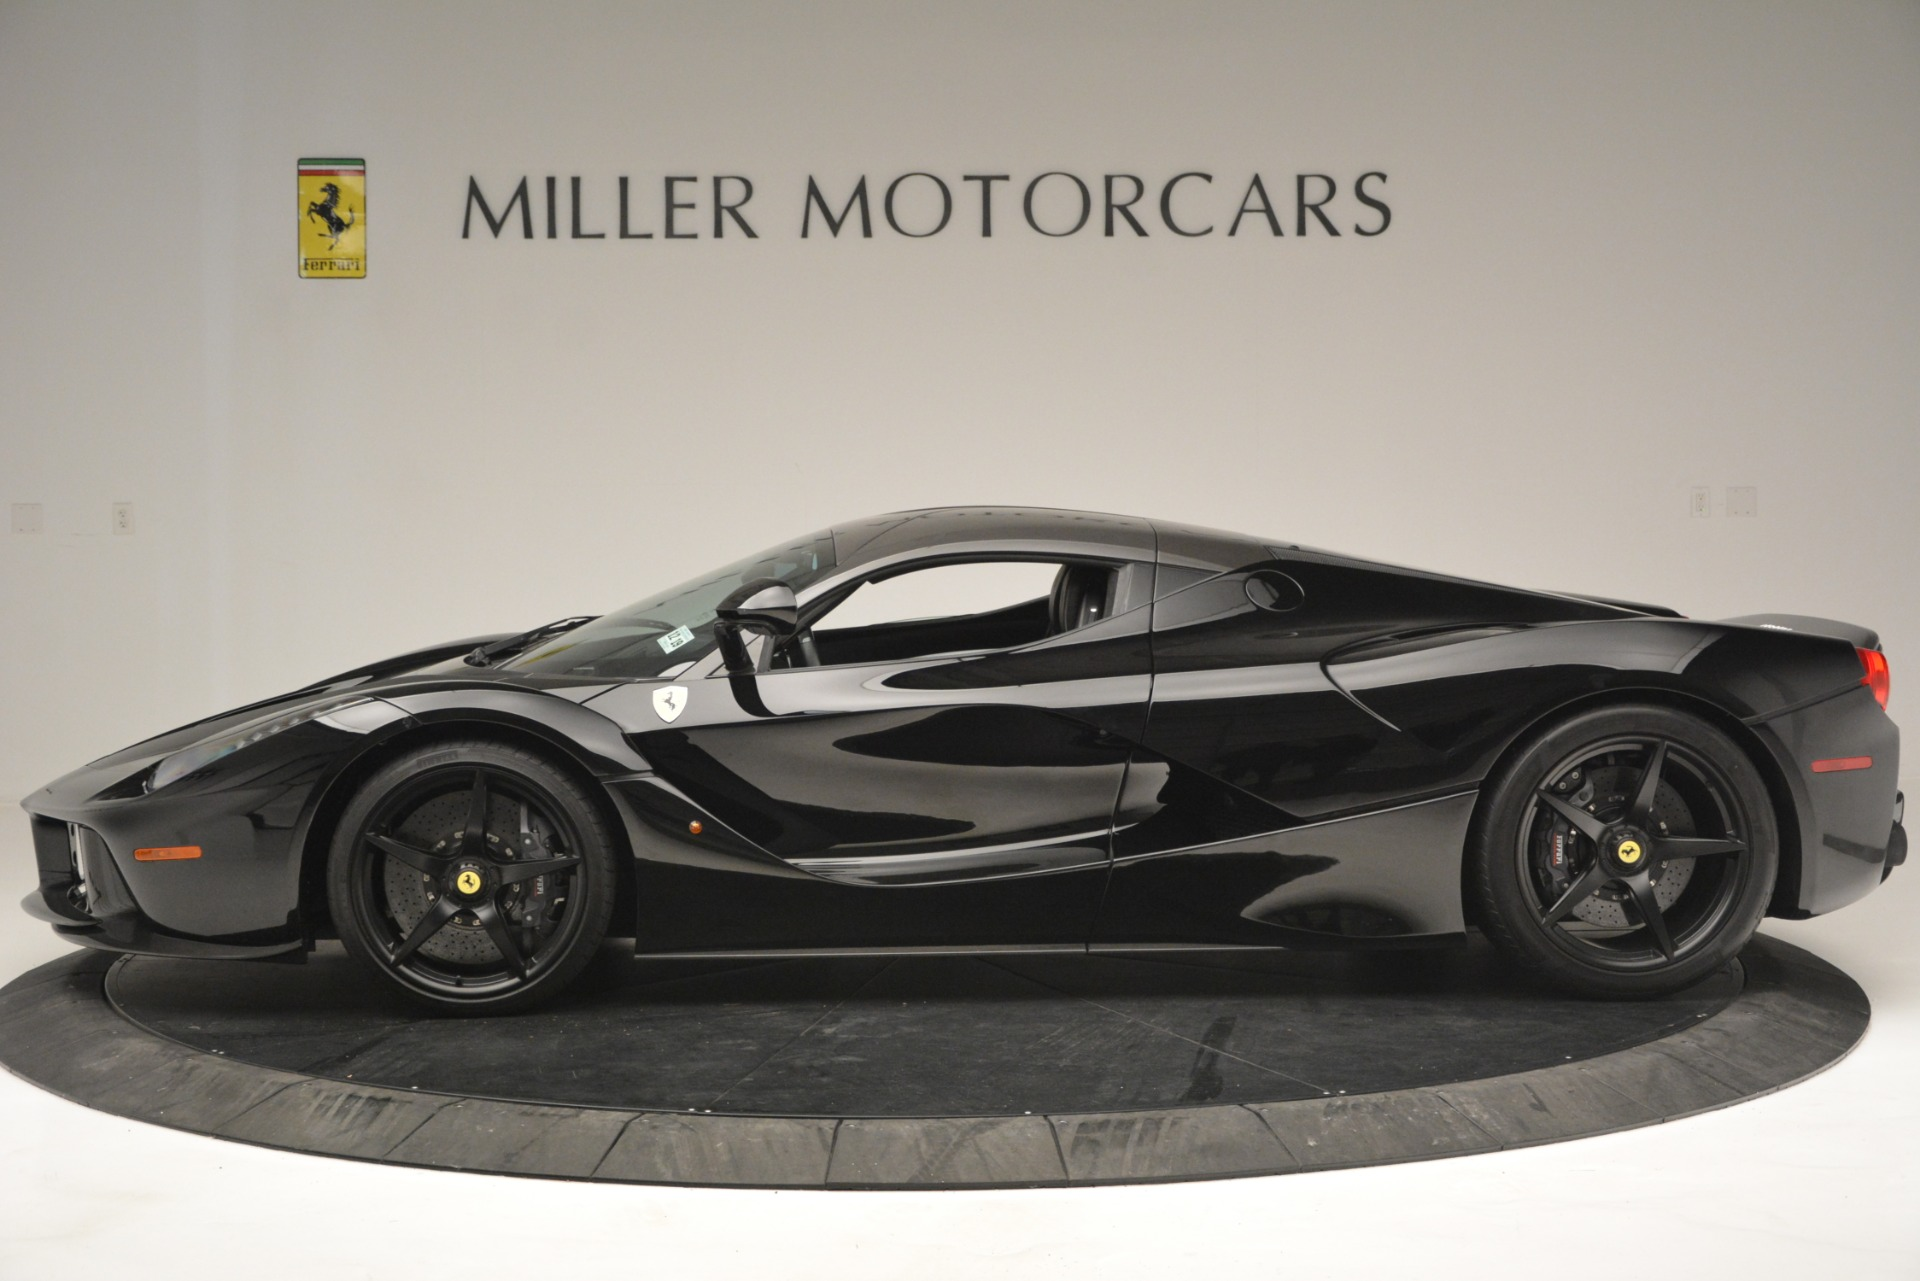 Ferrari Laferrari For Sale >> Used 2014 Ferrari Laferrari For Sale Miller Motorcars